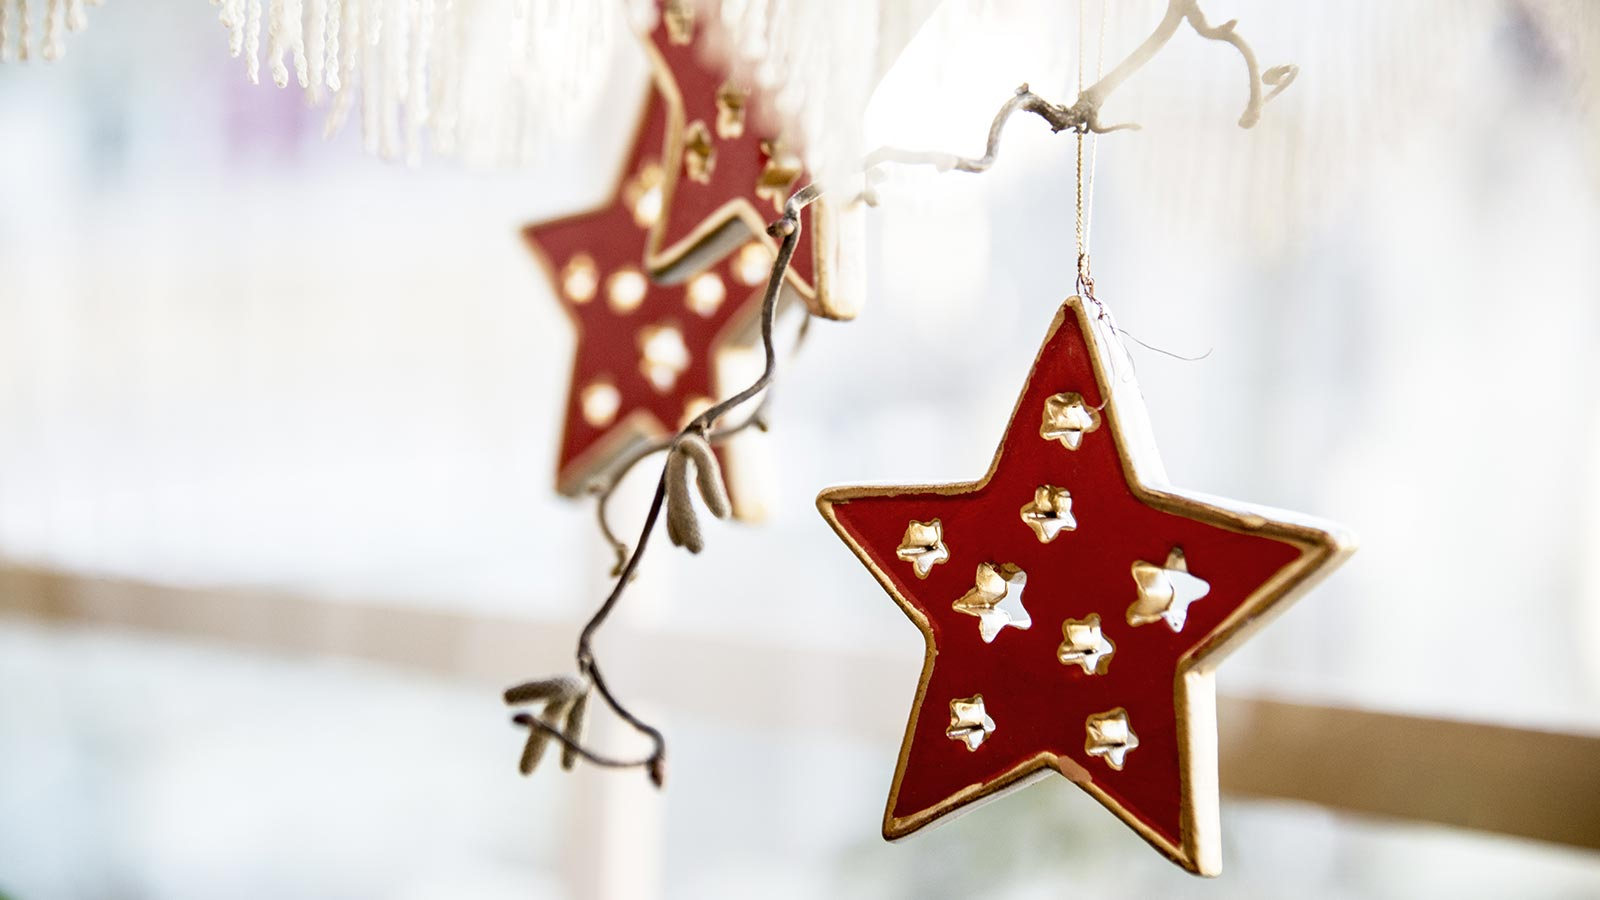 Detail of some Christmas decorations with red stars hanging from a branch at Hotel Gschwendt in Val Casies